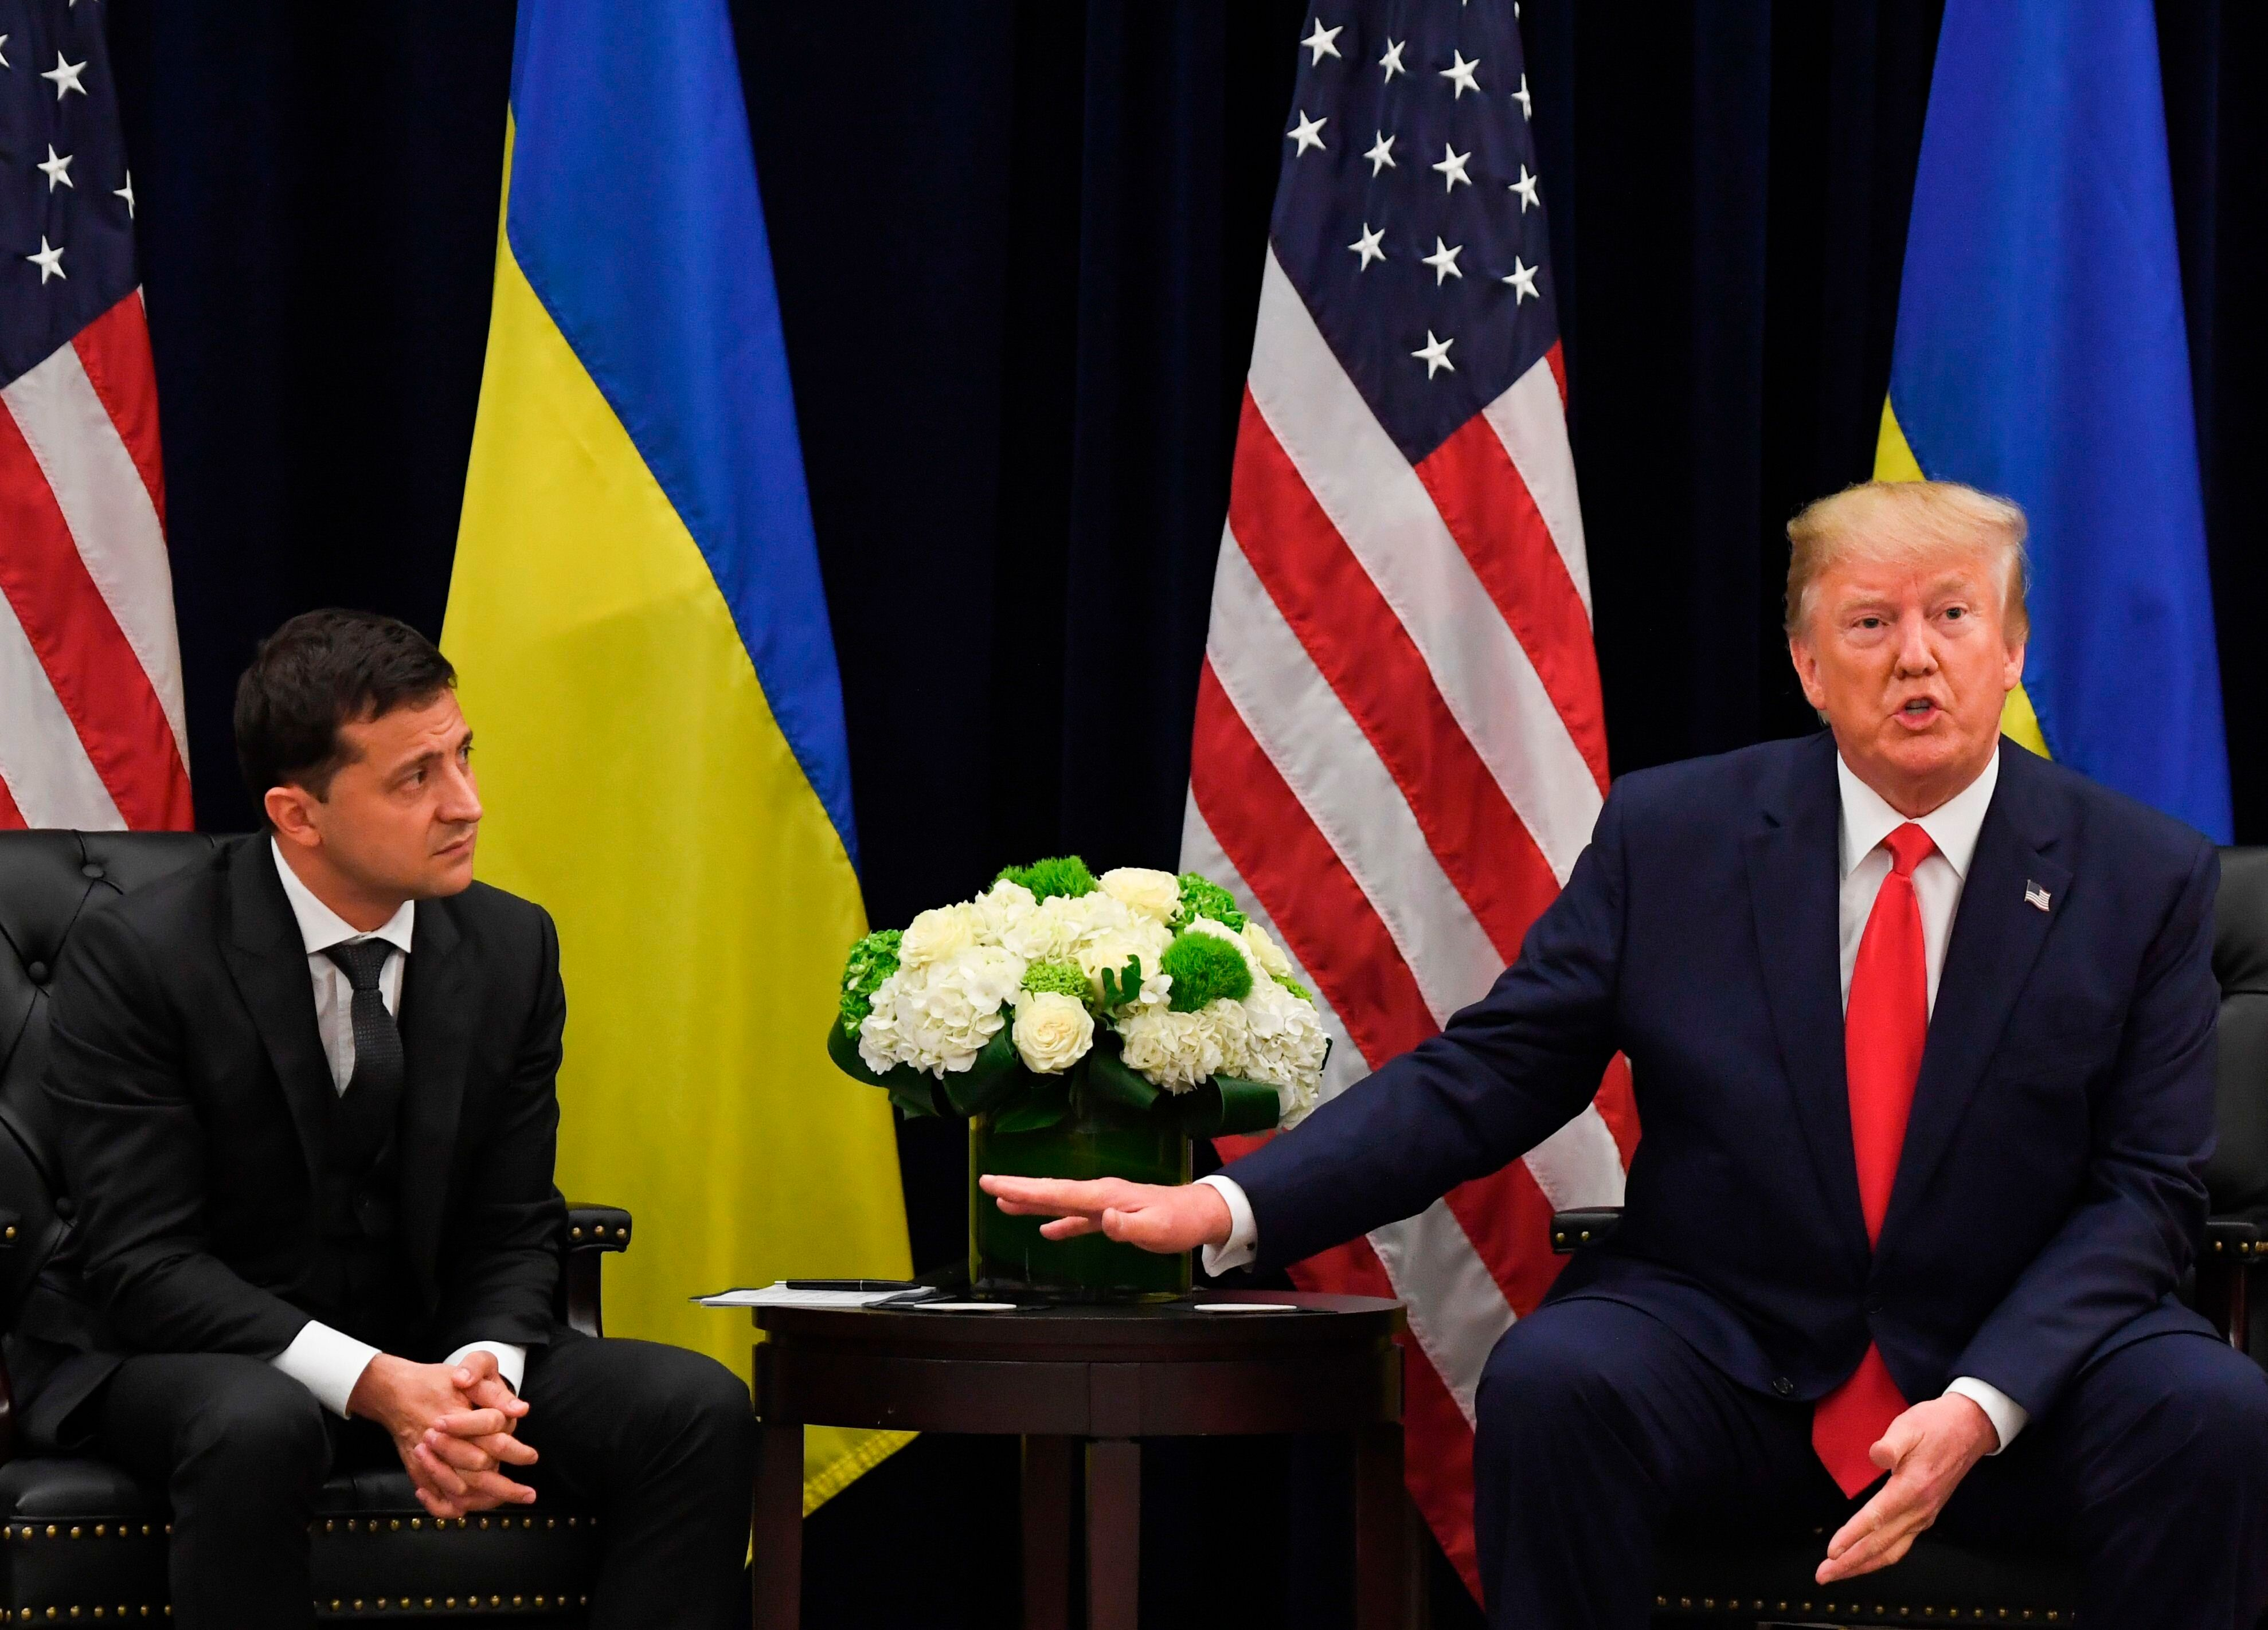 President Donald Trump and Ukrainian President Volodymyr Zelensky at the United Nations General Assembly on Wednesday.